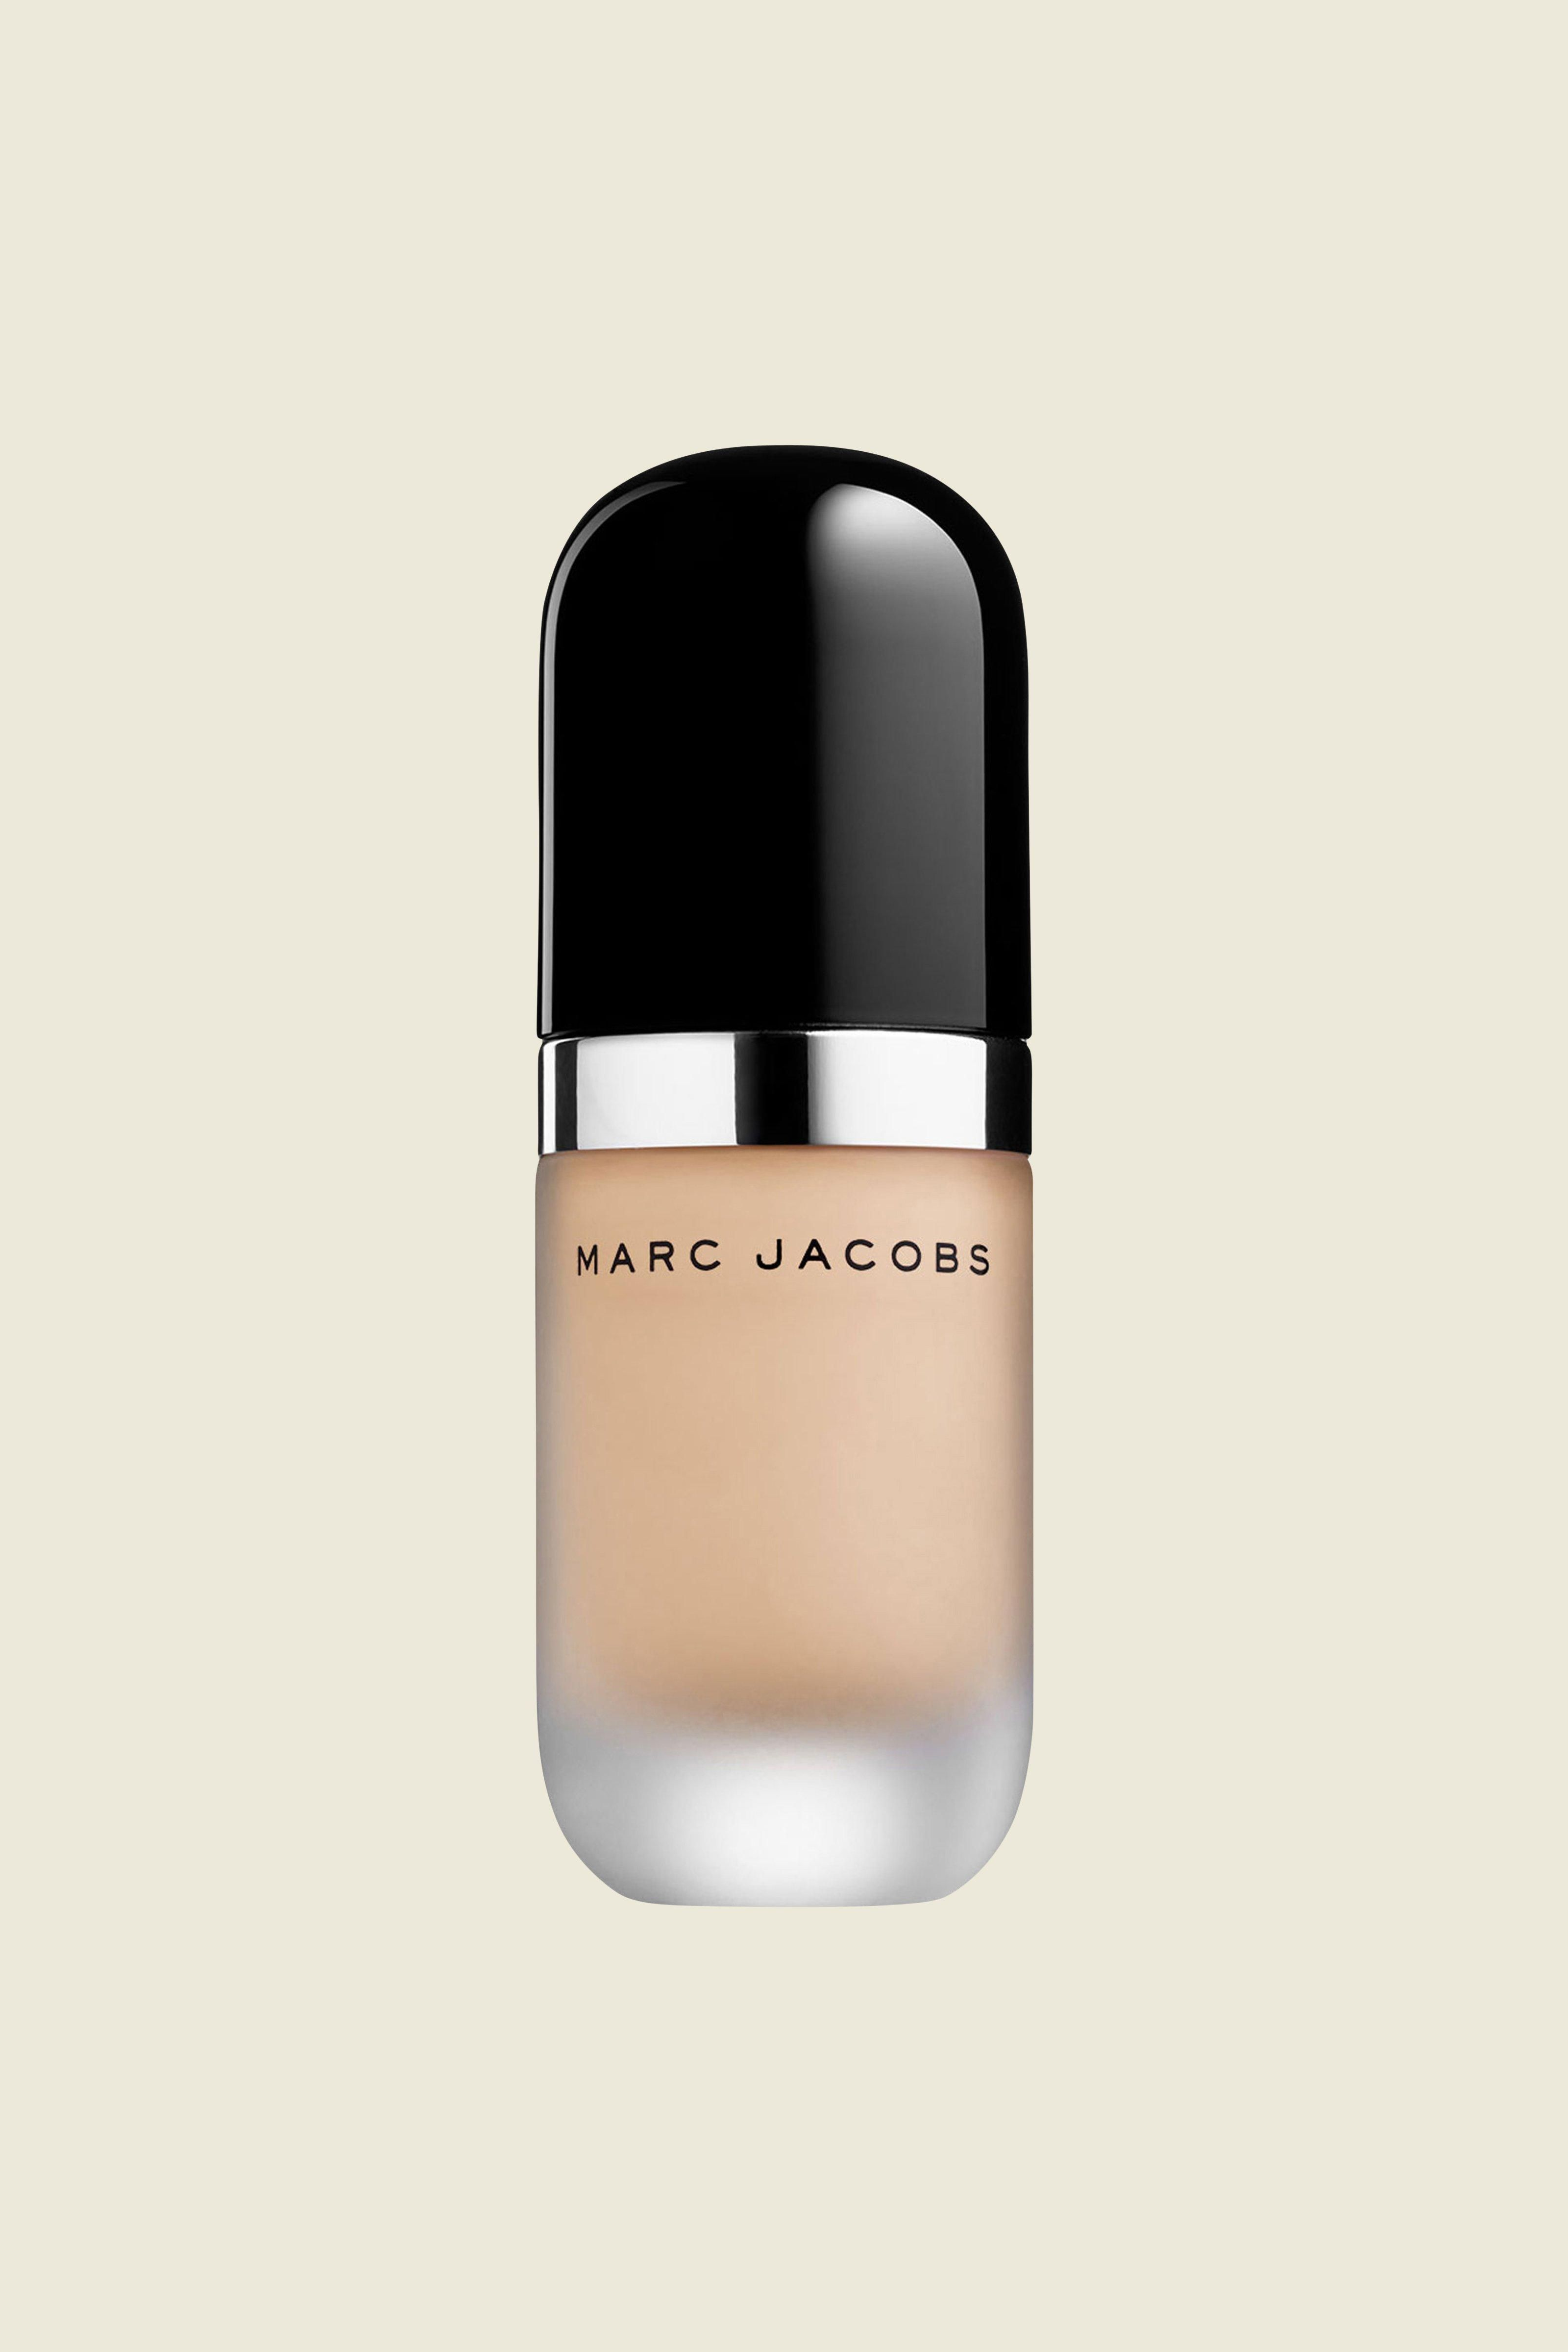 The Marc Jacobs Re(marc)able Foundation is full coverage in featherweight formula. A single drop transforms skin into a flawlessly perfected canvas. An unprecedented concentration of 43% pure biomimetic pigments and the lightest possible formula that is ten times thinner than average foundation, completely covering imperfections and fine lines with a weightless feel. Concentré-dot ensures the perfect dispensed amount.Available in multiple skin-matching shades.